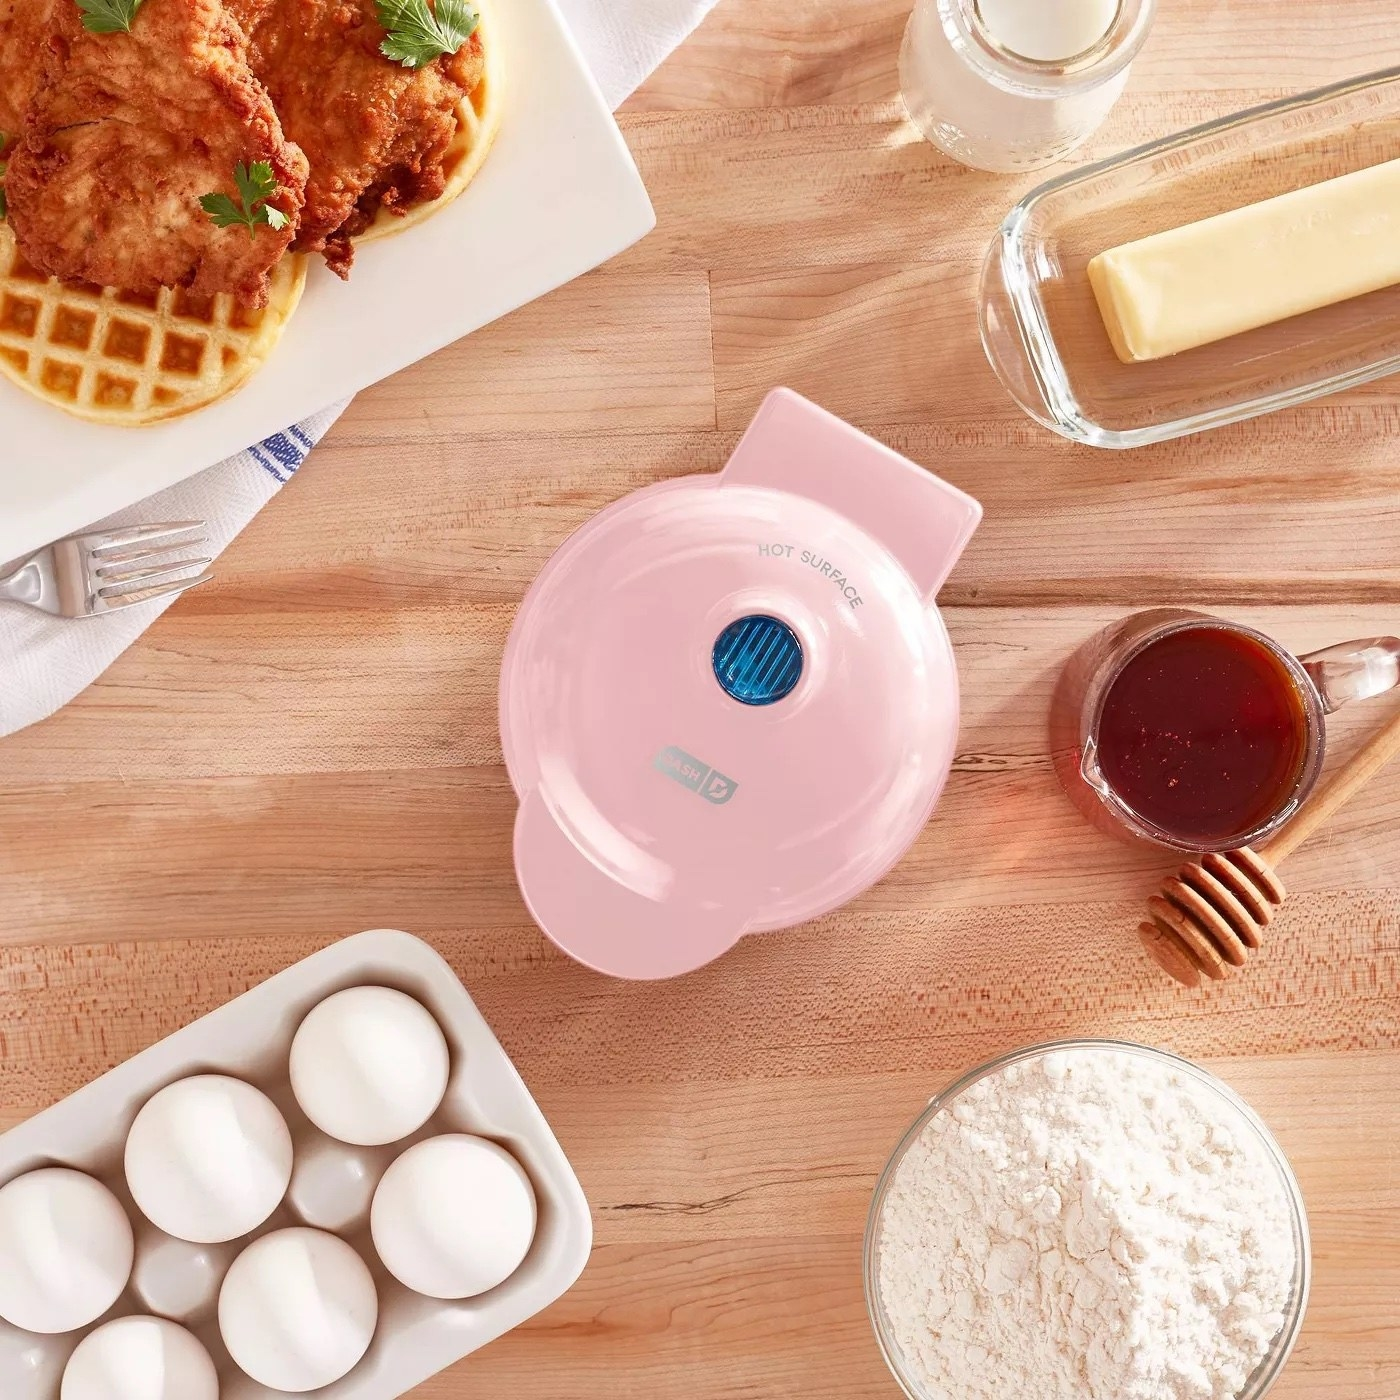 the pink waffle maker surrounded by breakfast supplies